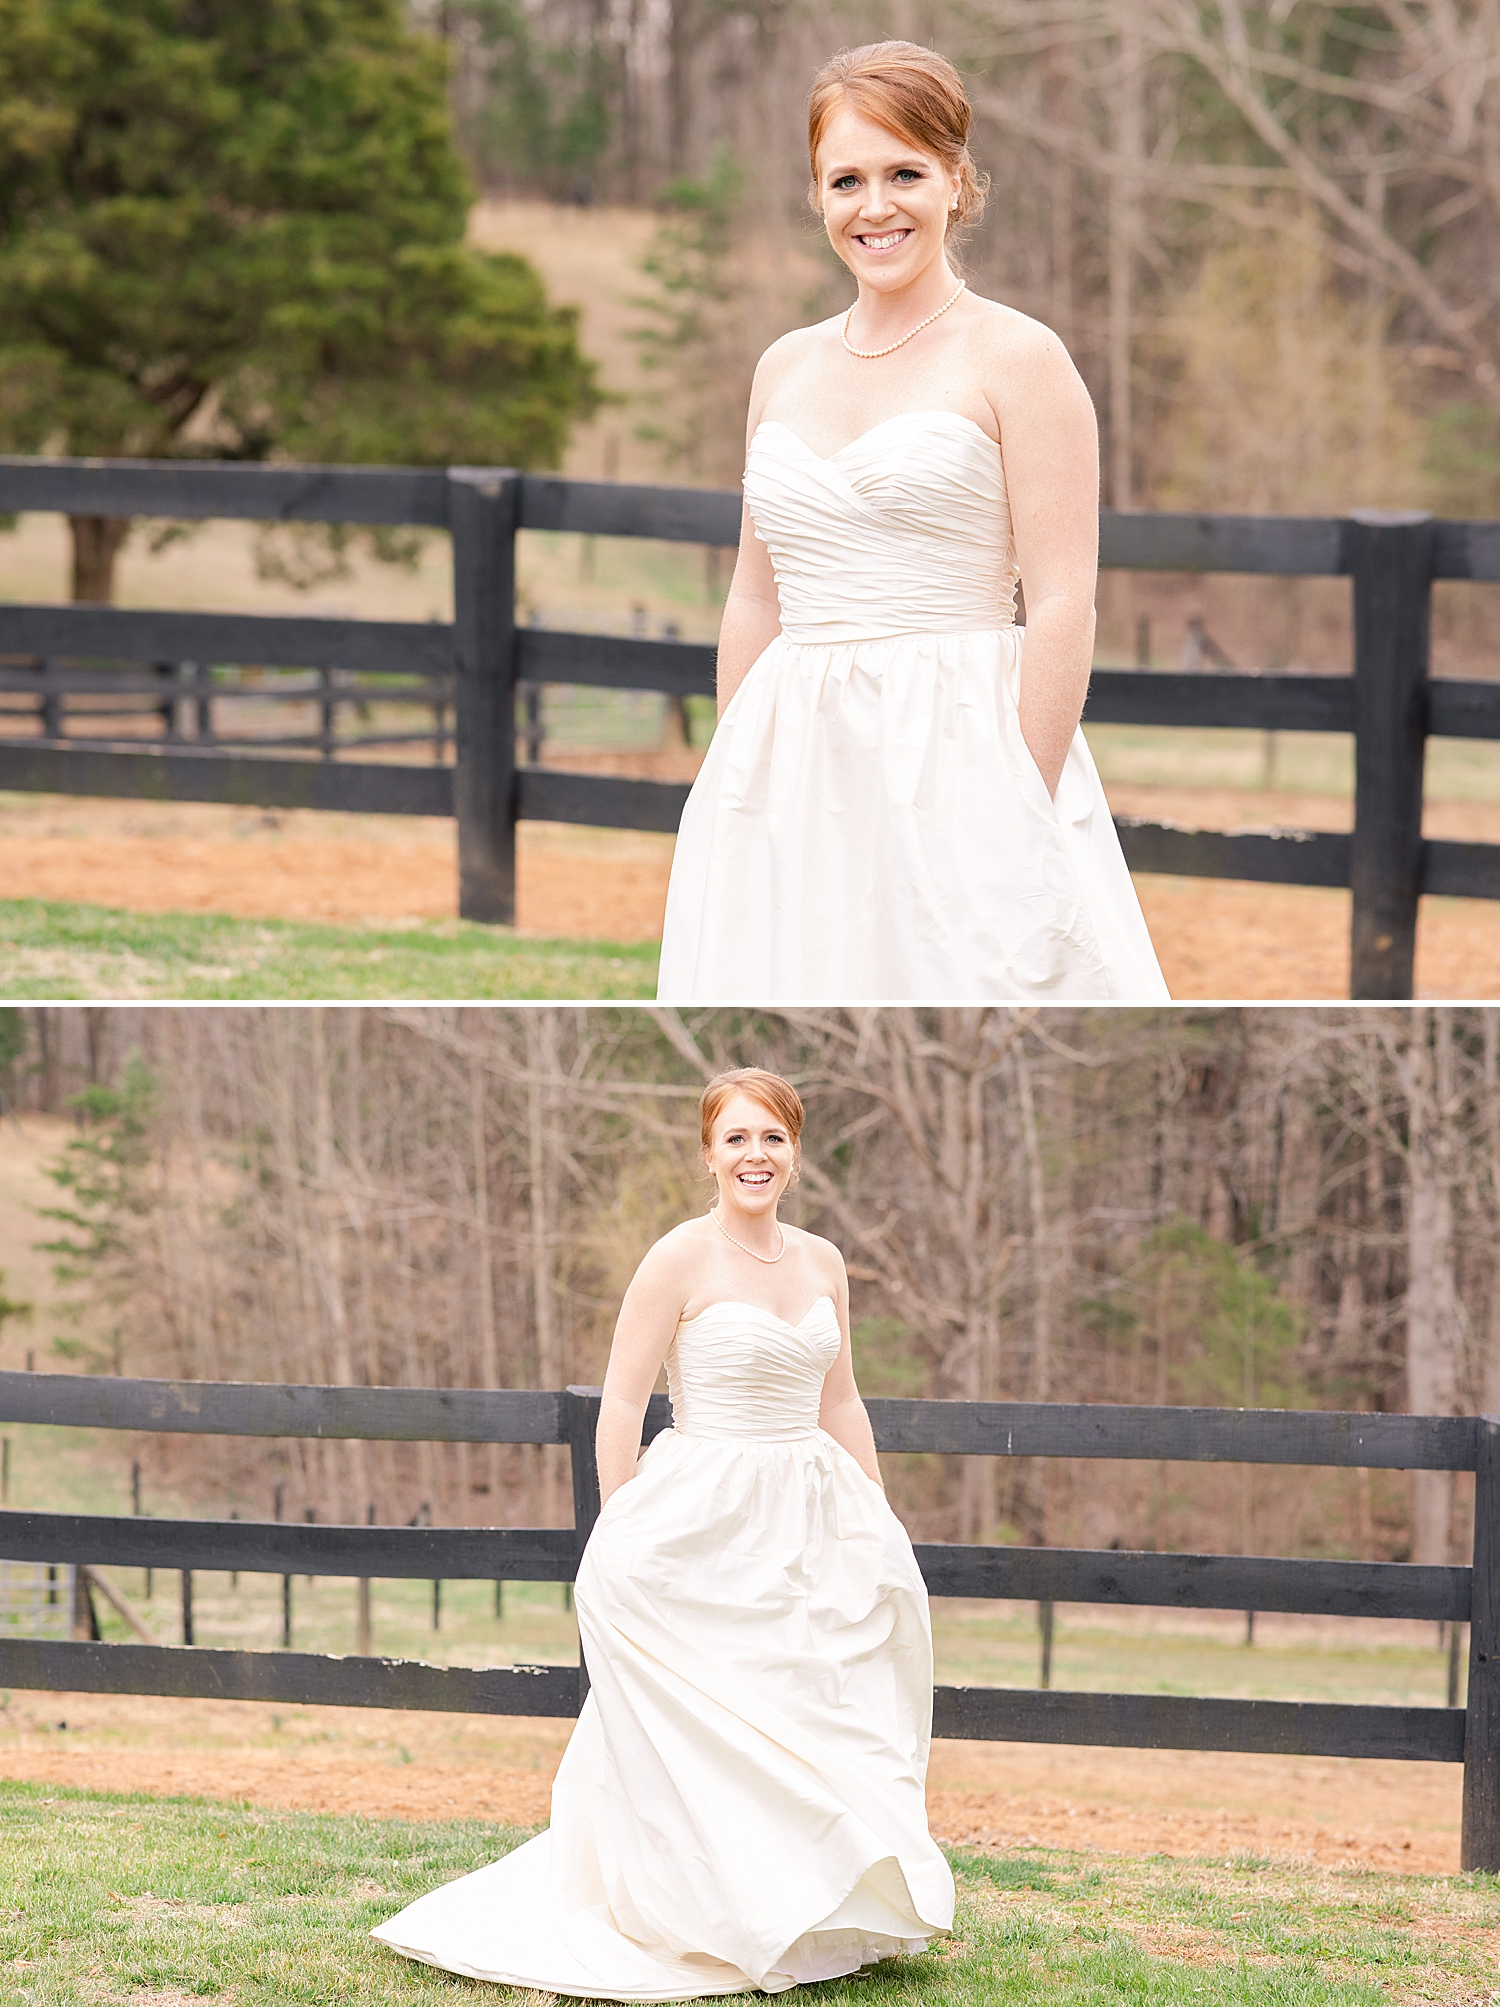 Wedding dress with pockets are my favorite thing!